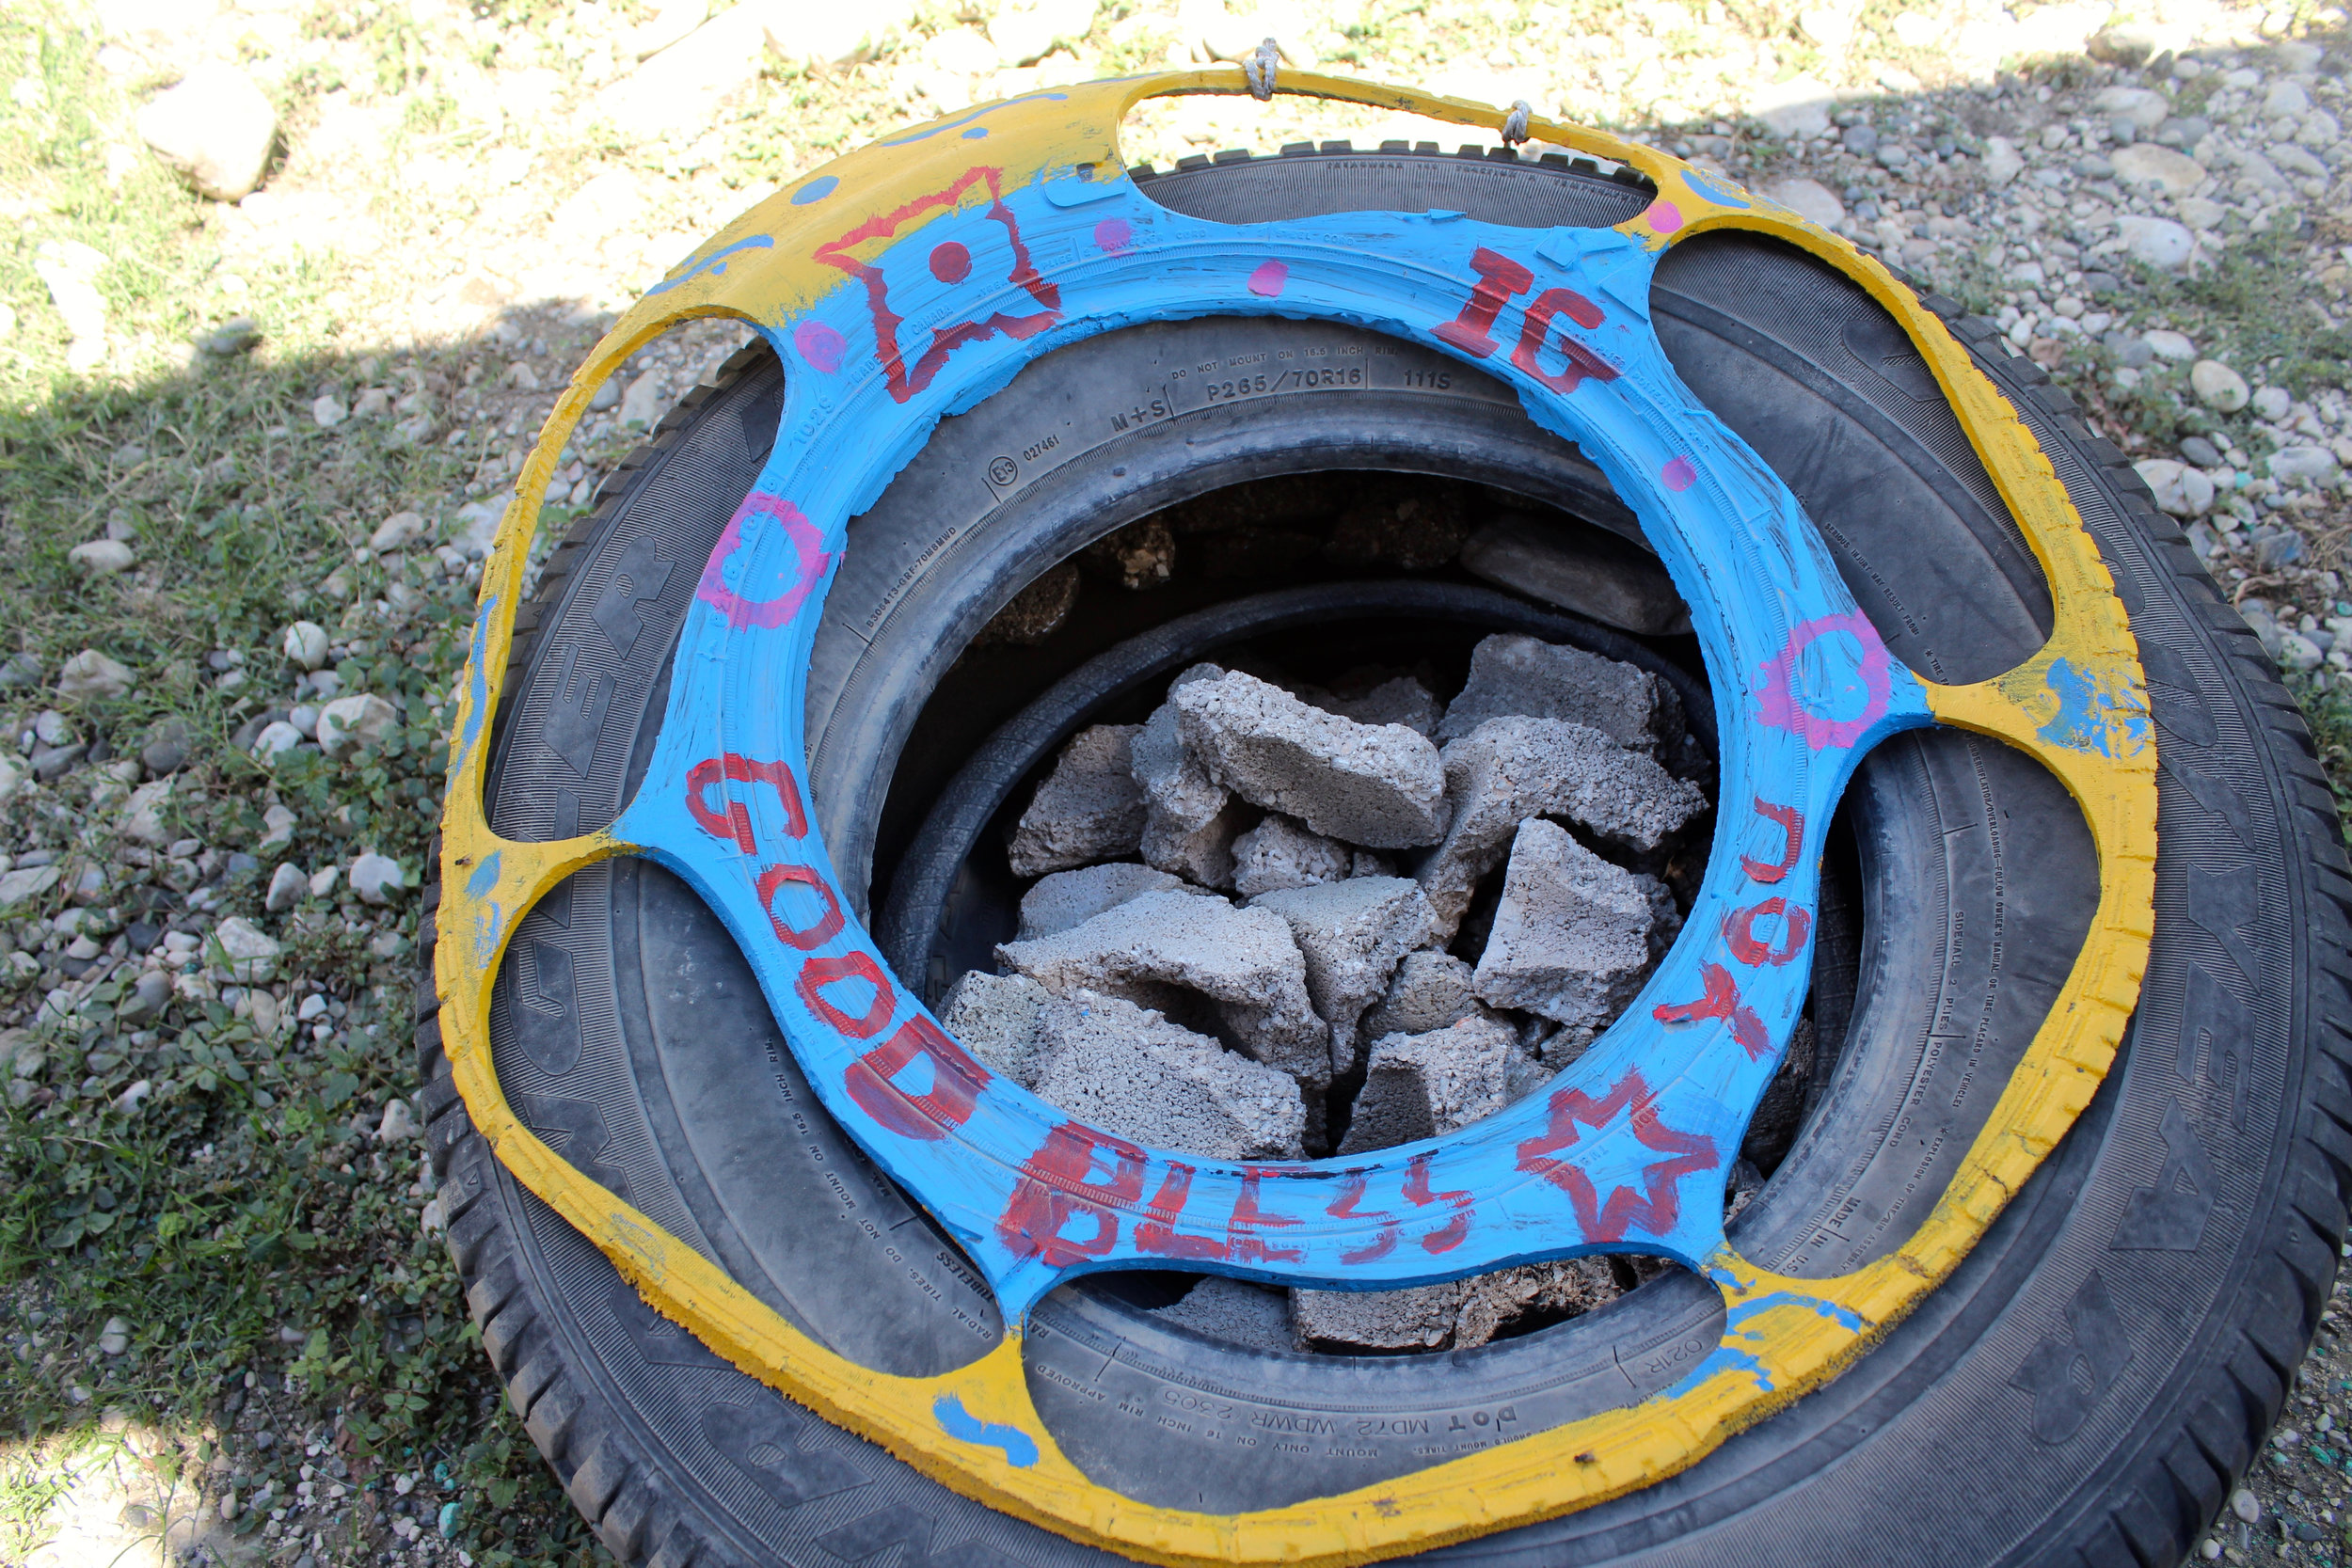 The sandal soles are cut from recycled tires using a machine with size attachments. Photo: A Bergamin